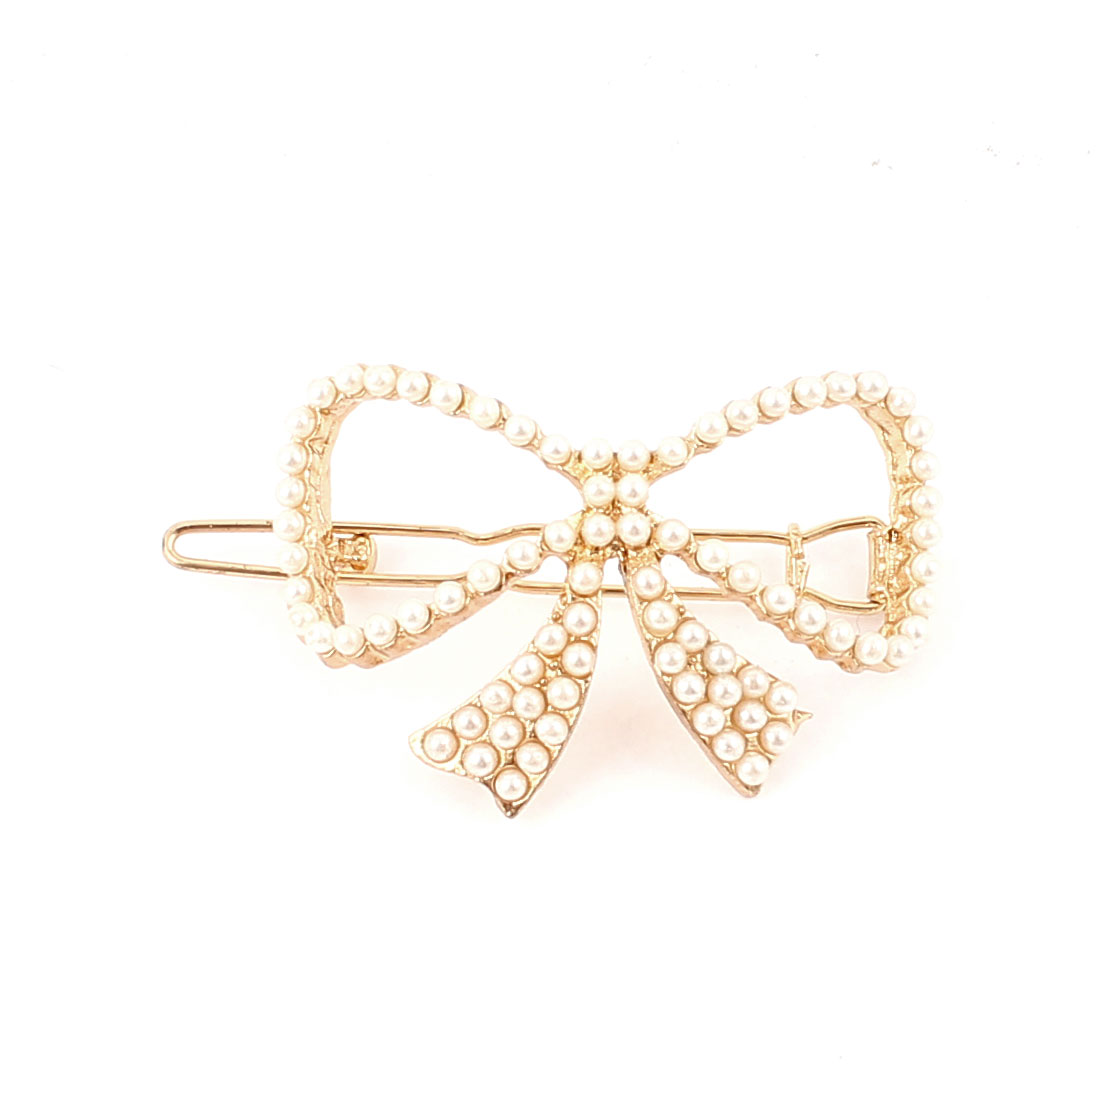 Metal Faux Beads Decor Bowknot Design Hair Clip Barrette Gold Tone White for Woman